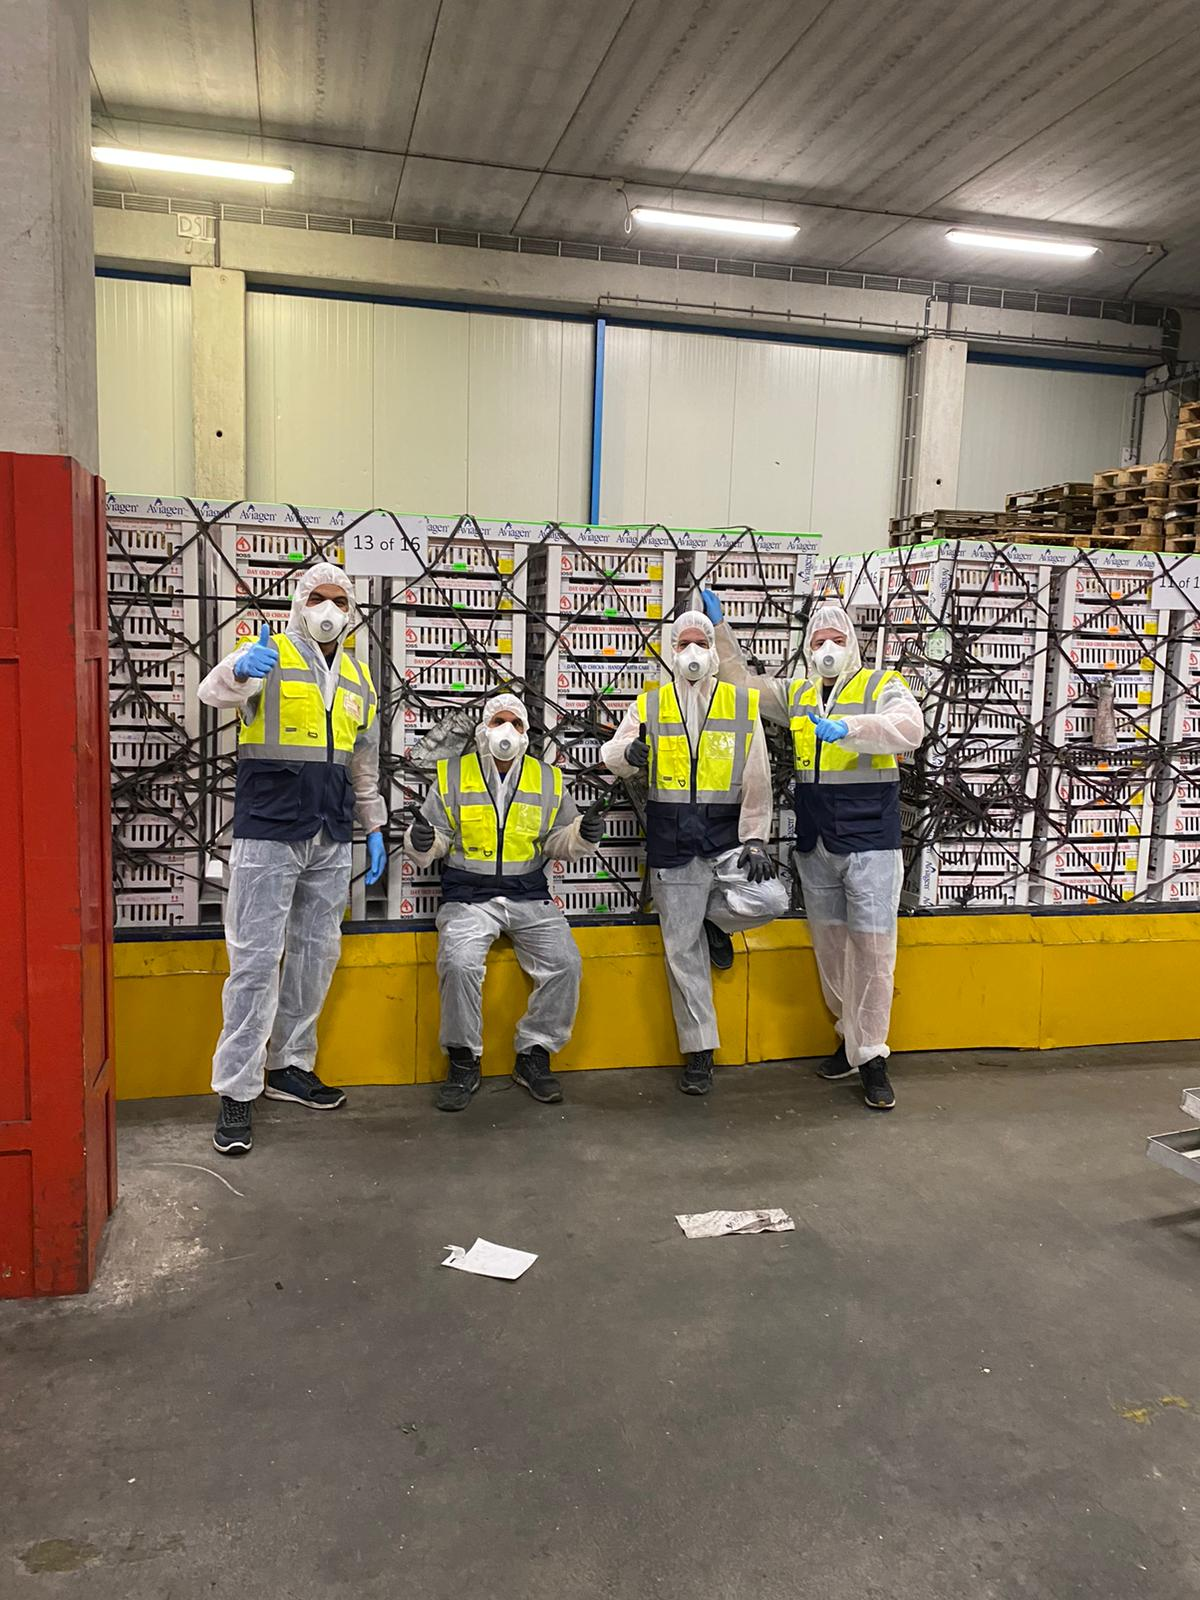 From left to right: Said Aharchaoui (Branch Manager Amsterdam), Mohamed Ahmitach (Warehouse Team Leader), Bas Kapaan (Logistics Supervisor), Niels Rijnbeek (Air Export Specialist)